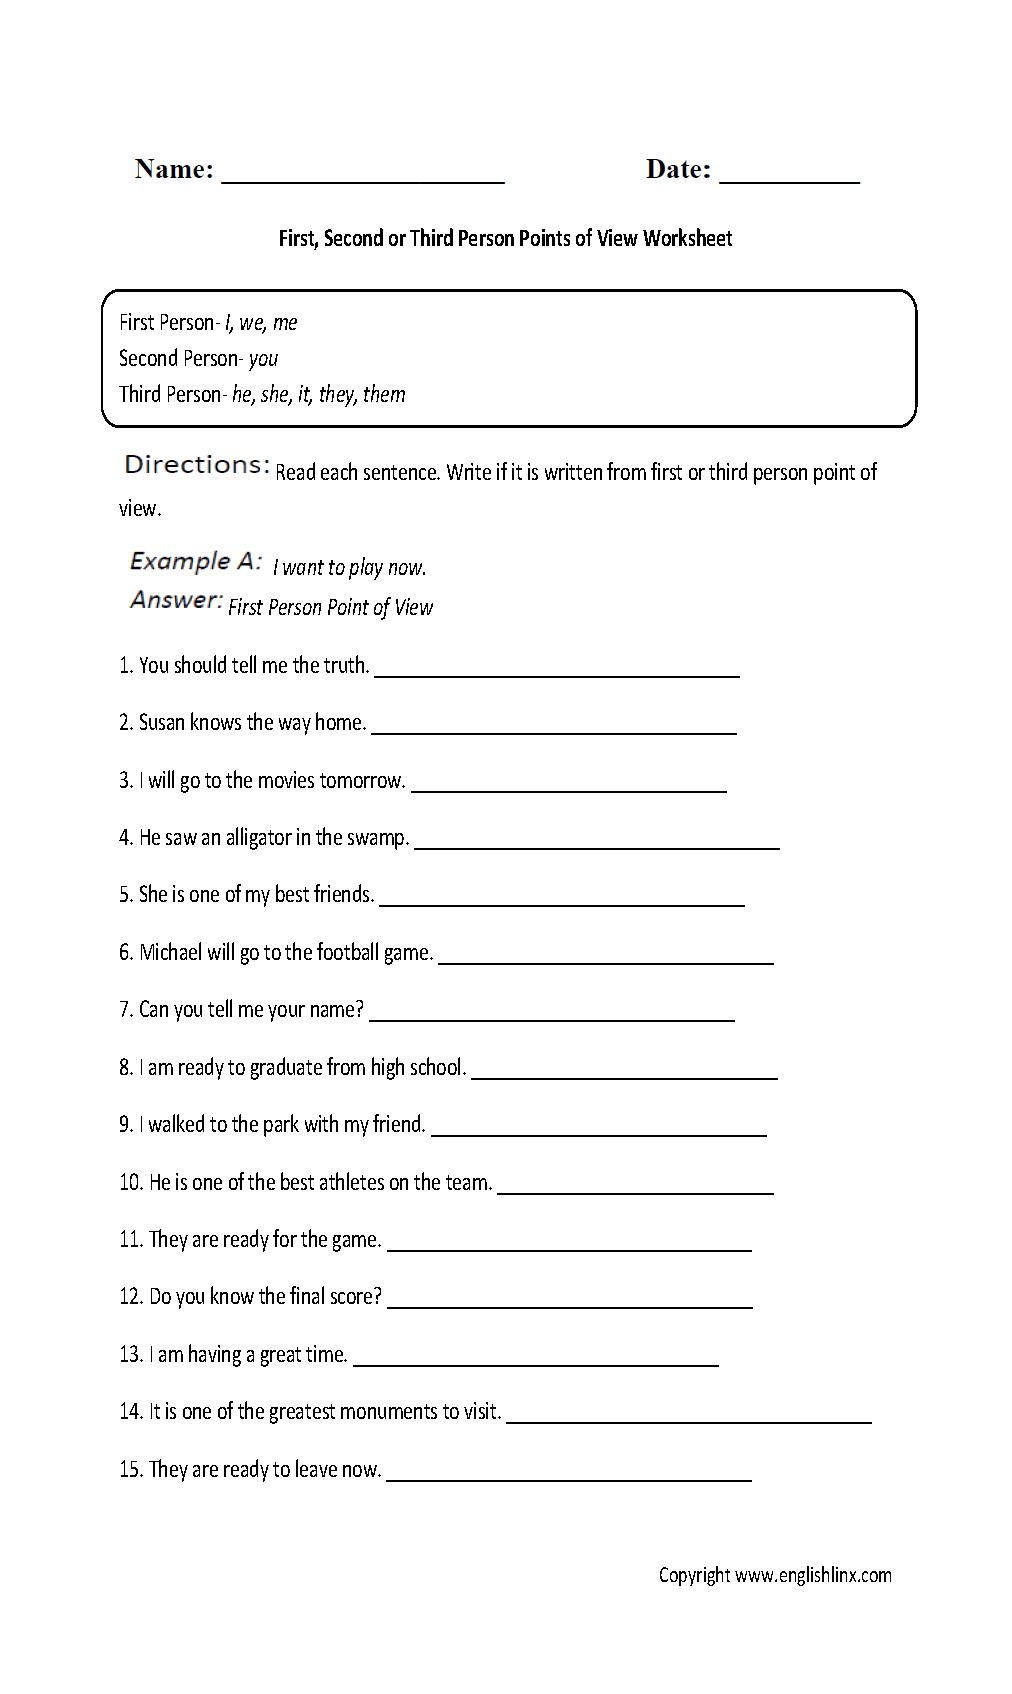 Proatmealus  Pretty Englishlinxcom  Point Of View Worksheets With Remarkable Point Of View Worksheet With Appealing Numbers To  Worksheets Also Comprehension Worksheets High School In Addition Ordinal Numbers Worksheet For Grade  And Worksheets Grade  As Well As Free Printable Adjective Worksheets For Nd Grade Additionally Multiplying Large Numbers Worksheet From Englishlinxcom With Proatmealus  Remarkable Englishlinxcom  Point Of View Worksheets With Appealing Point Of View Worksheet And Pretty Numbers To  Worksheets Also Comprehension Worksheets High School In Addition Ordinal Numbers Worksheet For Grade  From Englishlinxcom